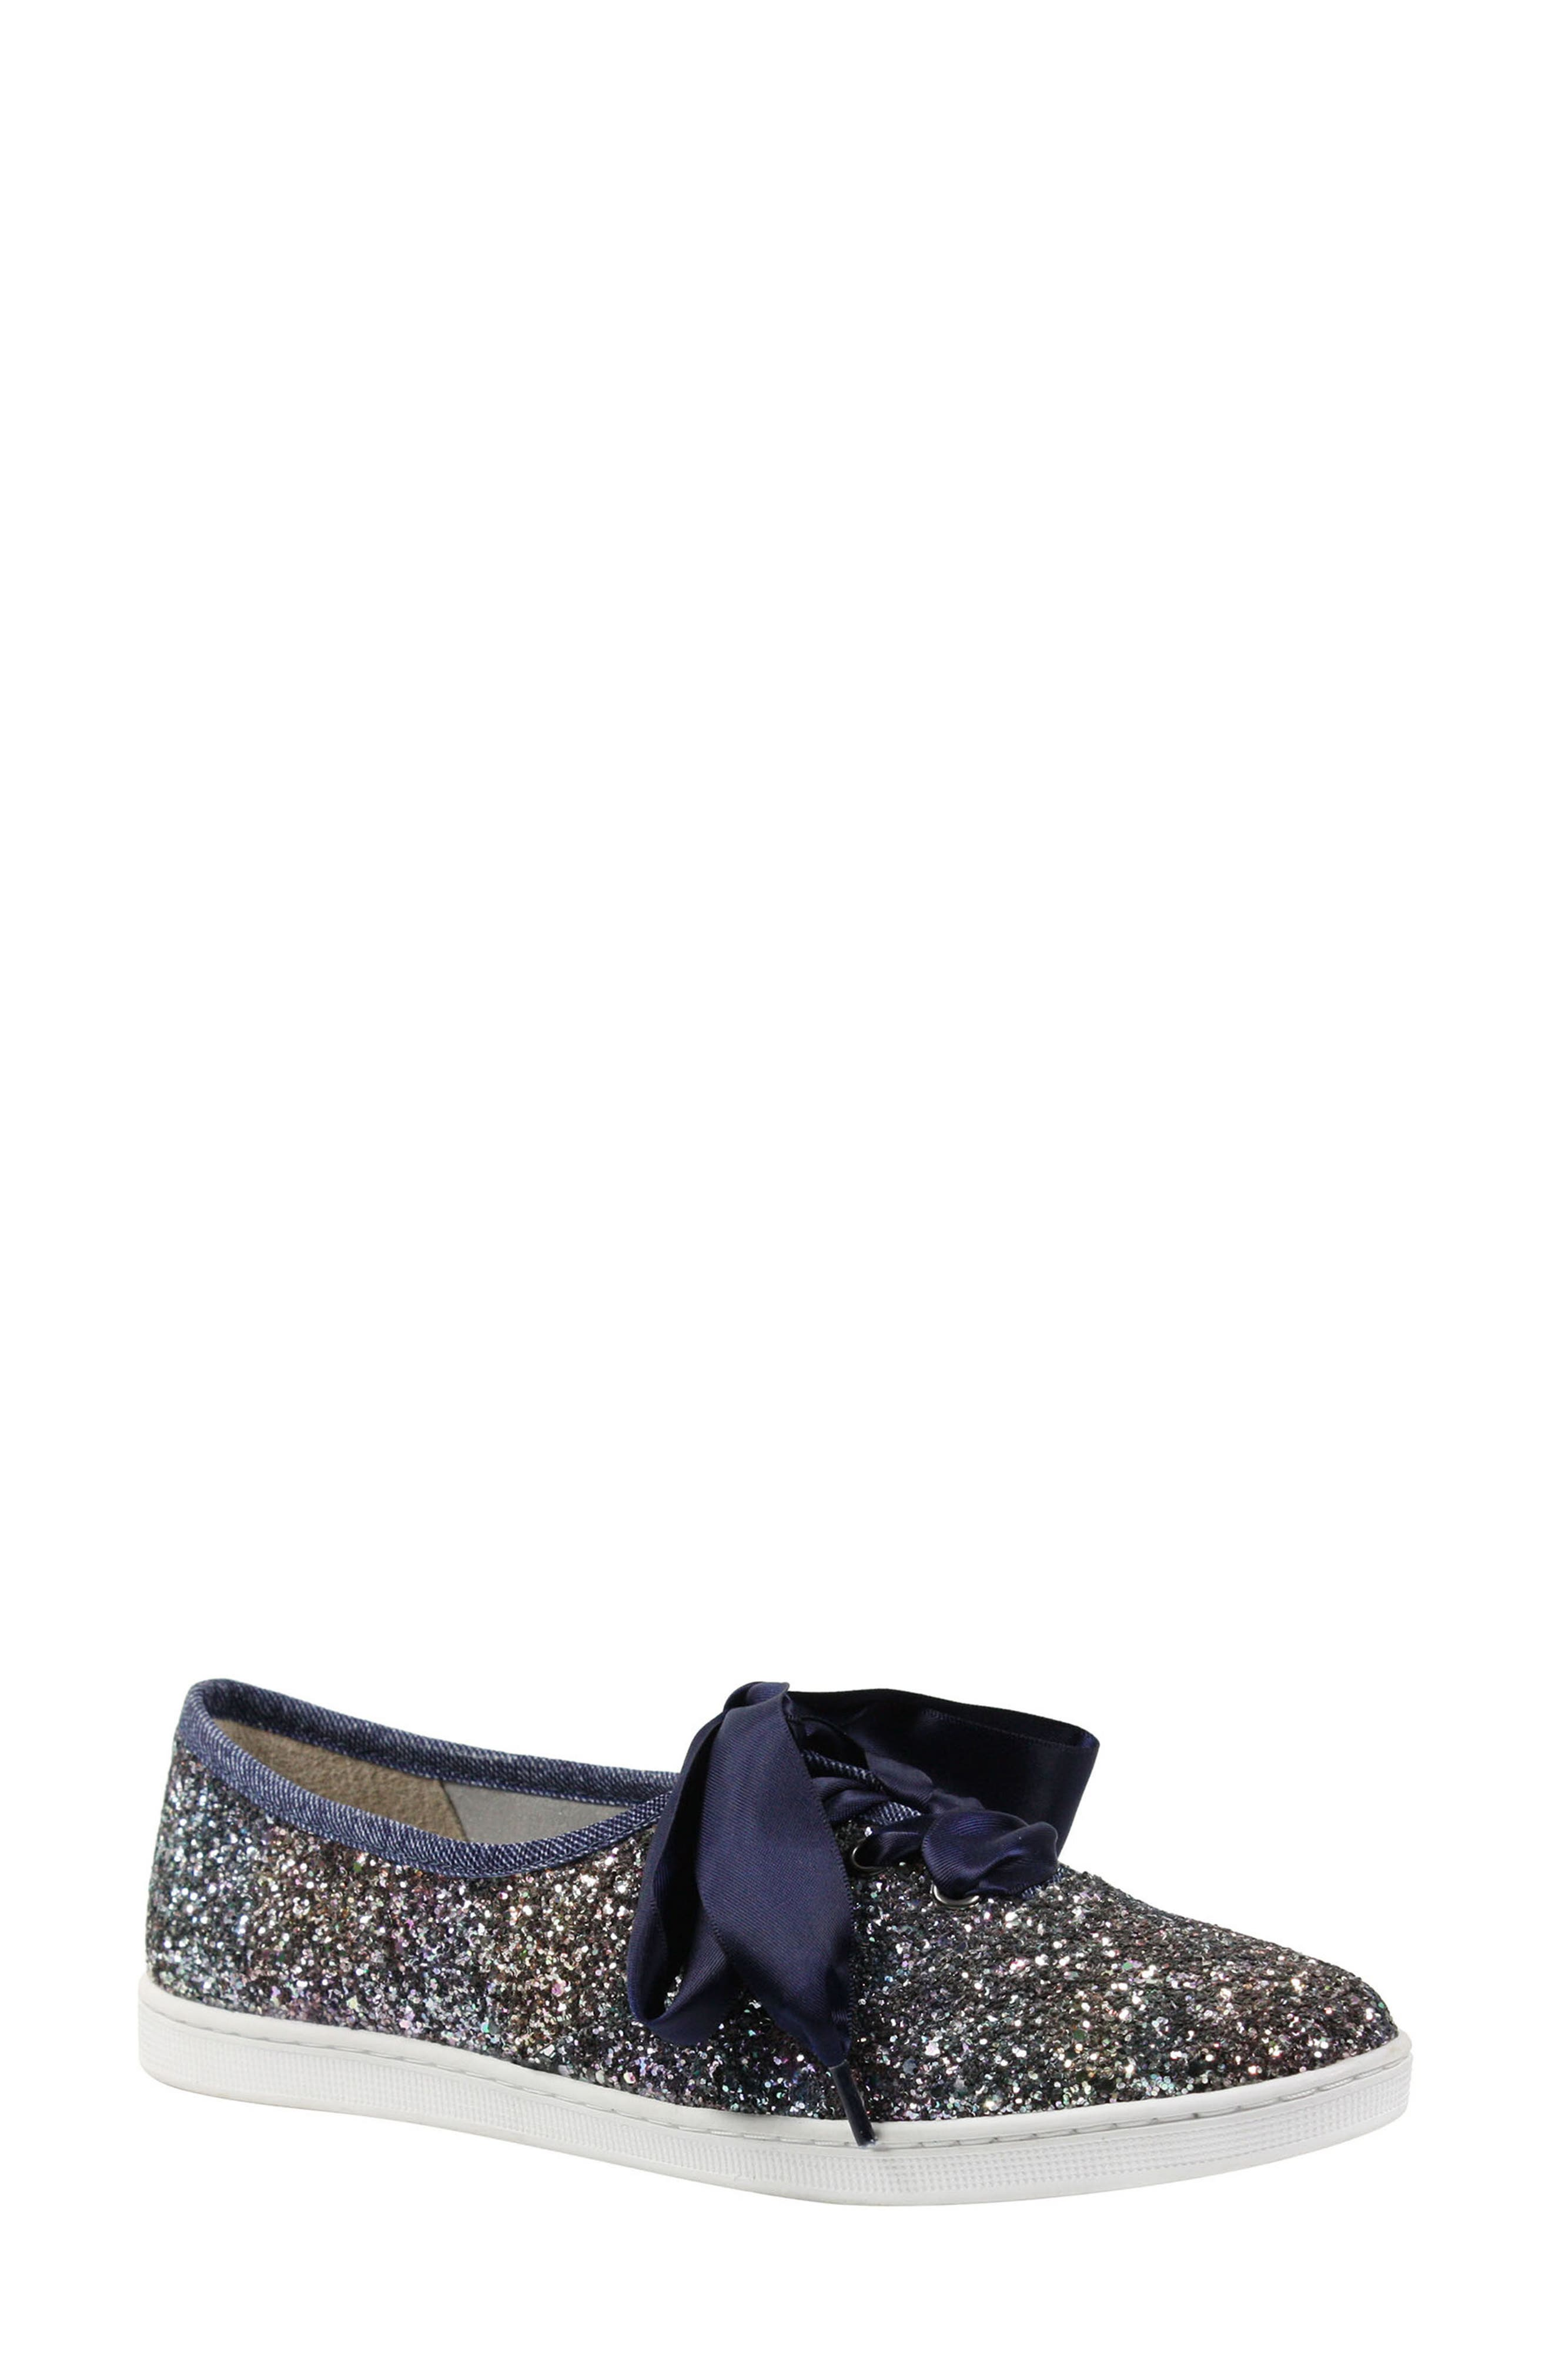 Alternate Image 1 Selected - J. Reneé Shimmo Bow Sneaker (Women)